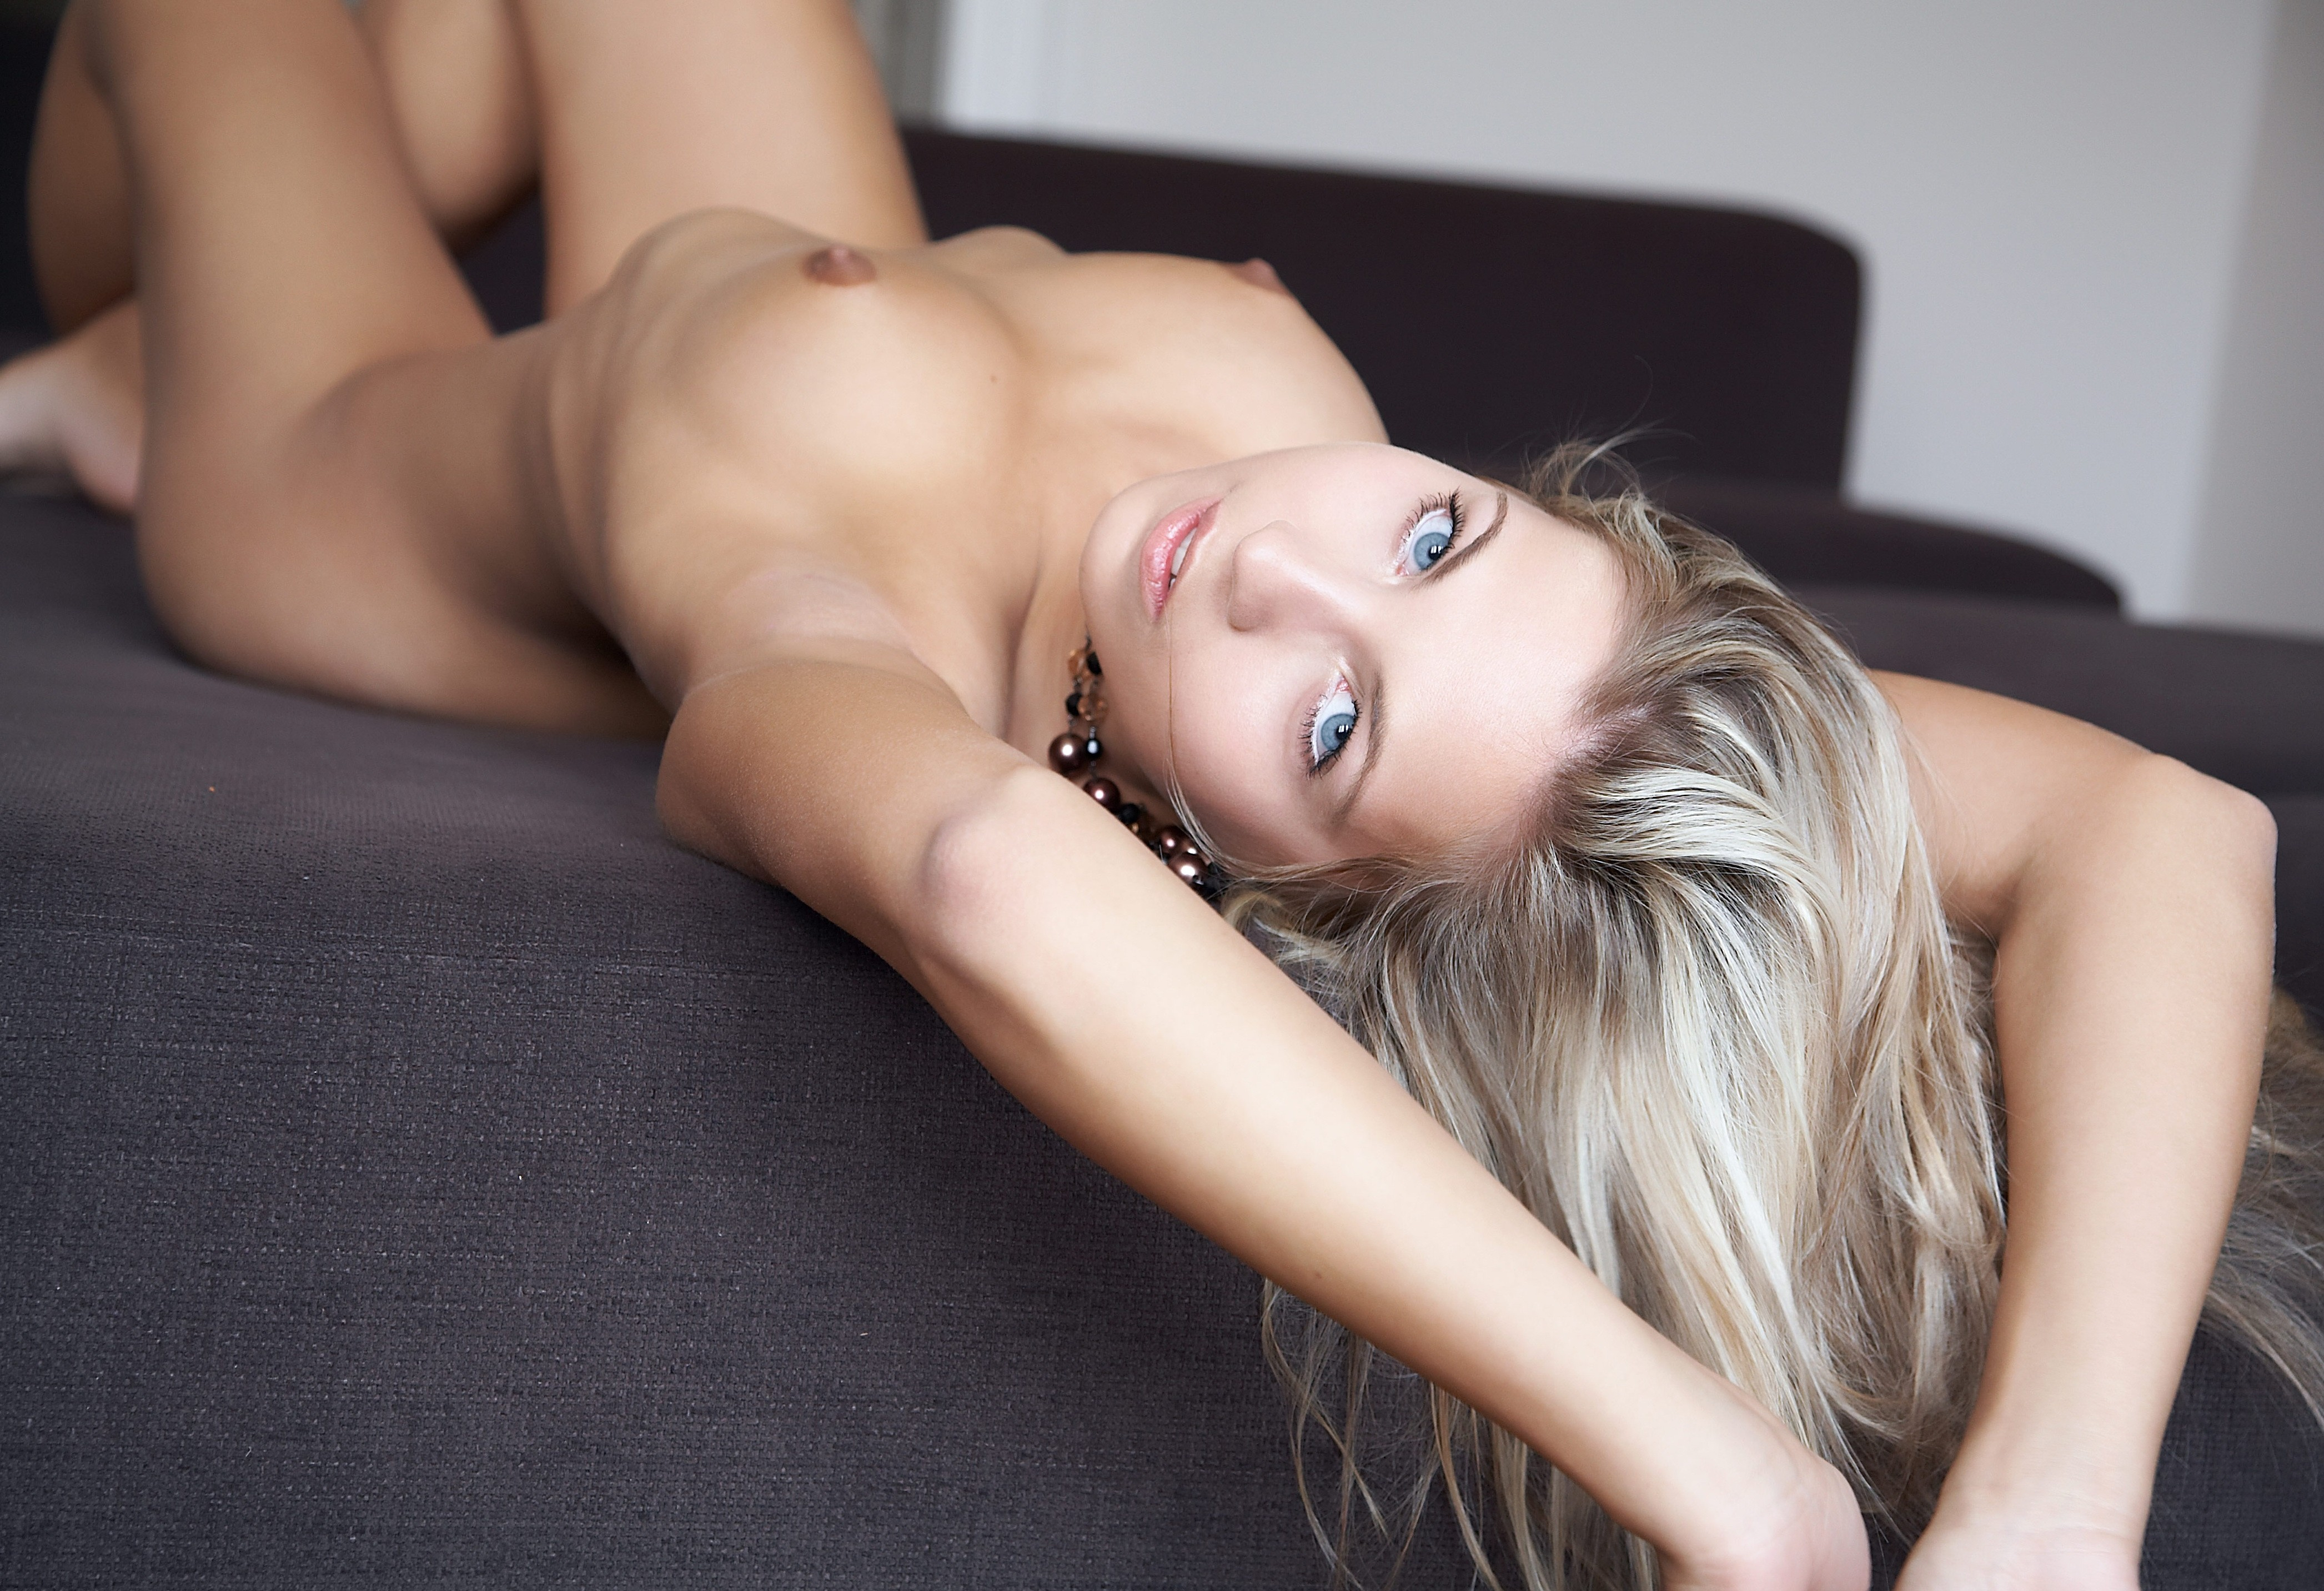 Blonde woman naked